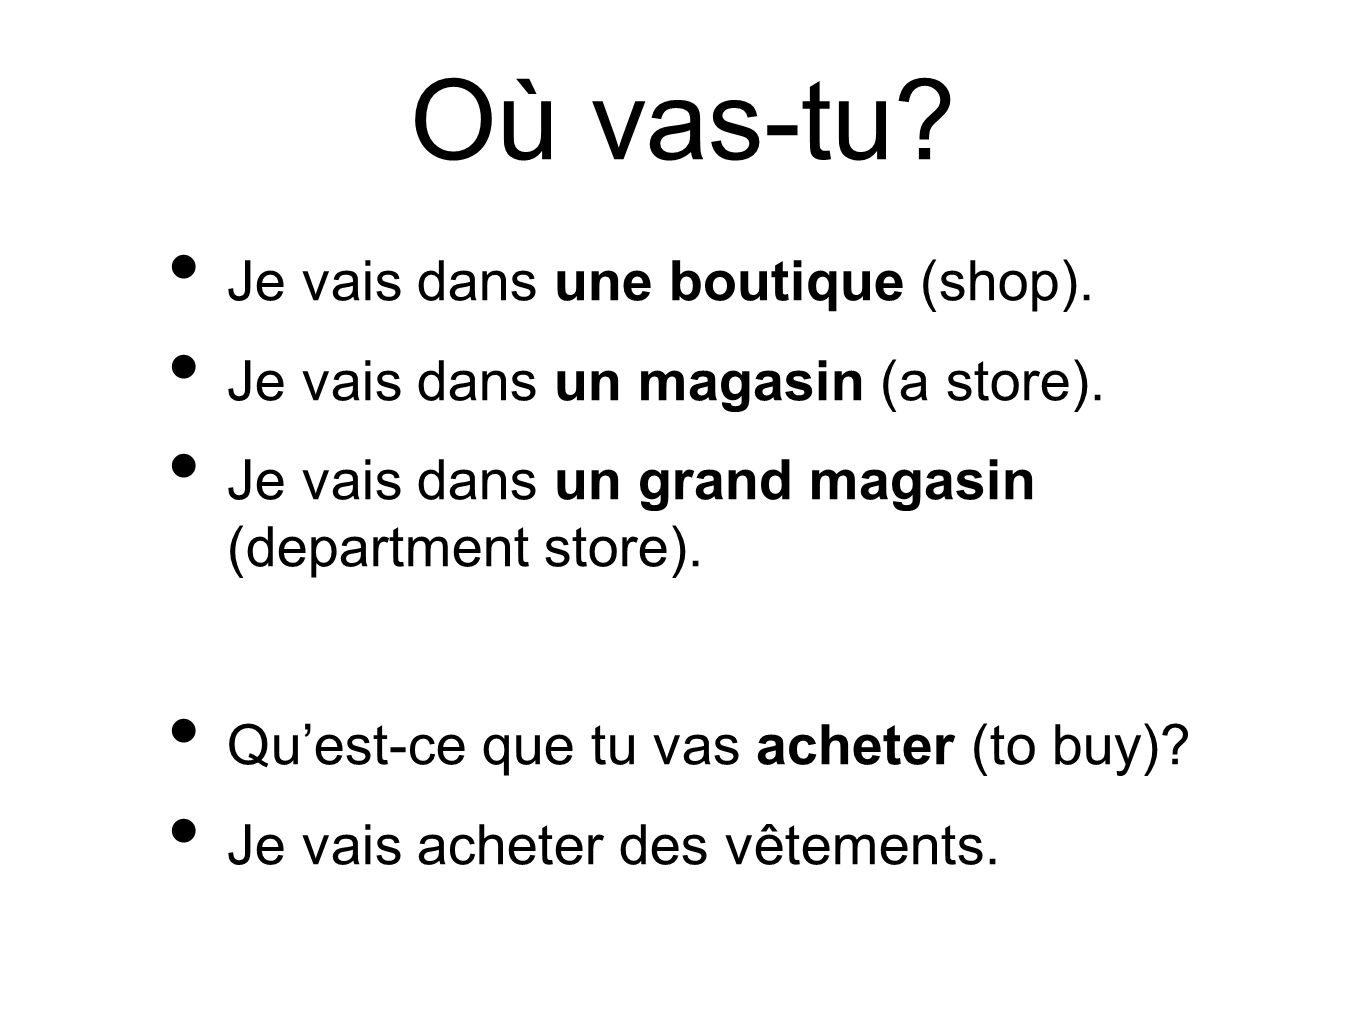 le verbe mettre to put, place, wear, put on, turn on je mets tu mets il met nous mettons vous mettez ils mettent